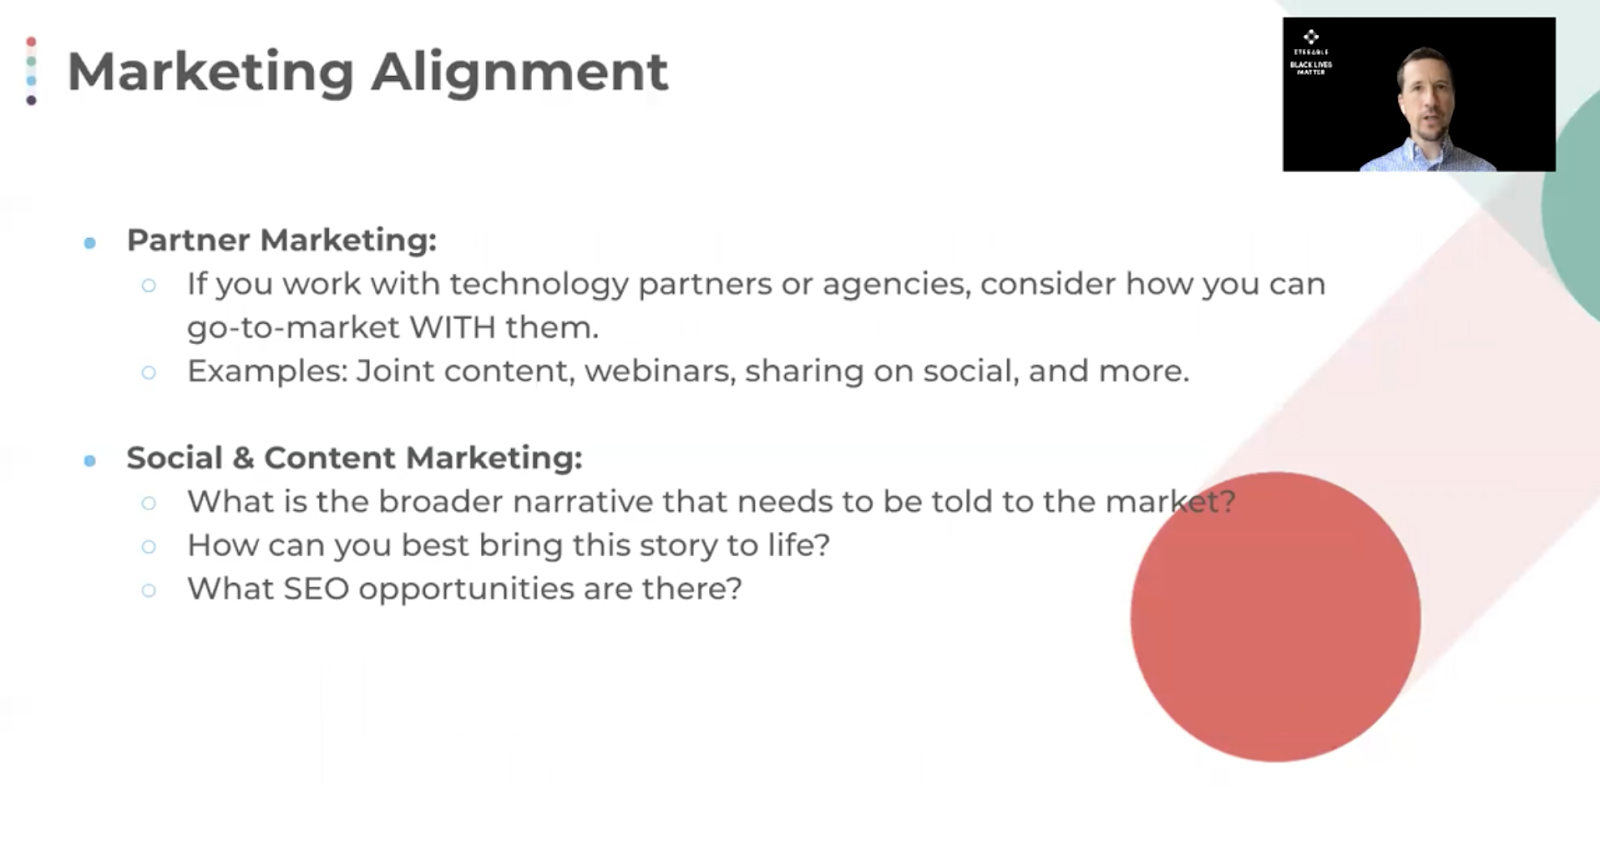 Marketing alignment between partner marketing and social and content marketing is critical when launching a product.